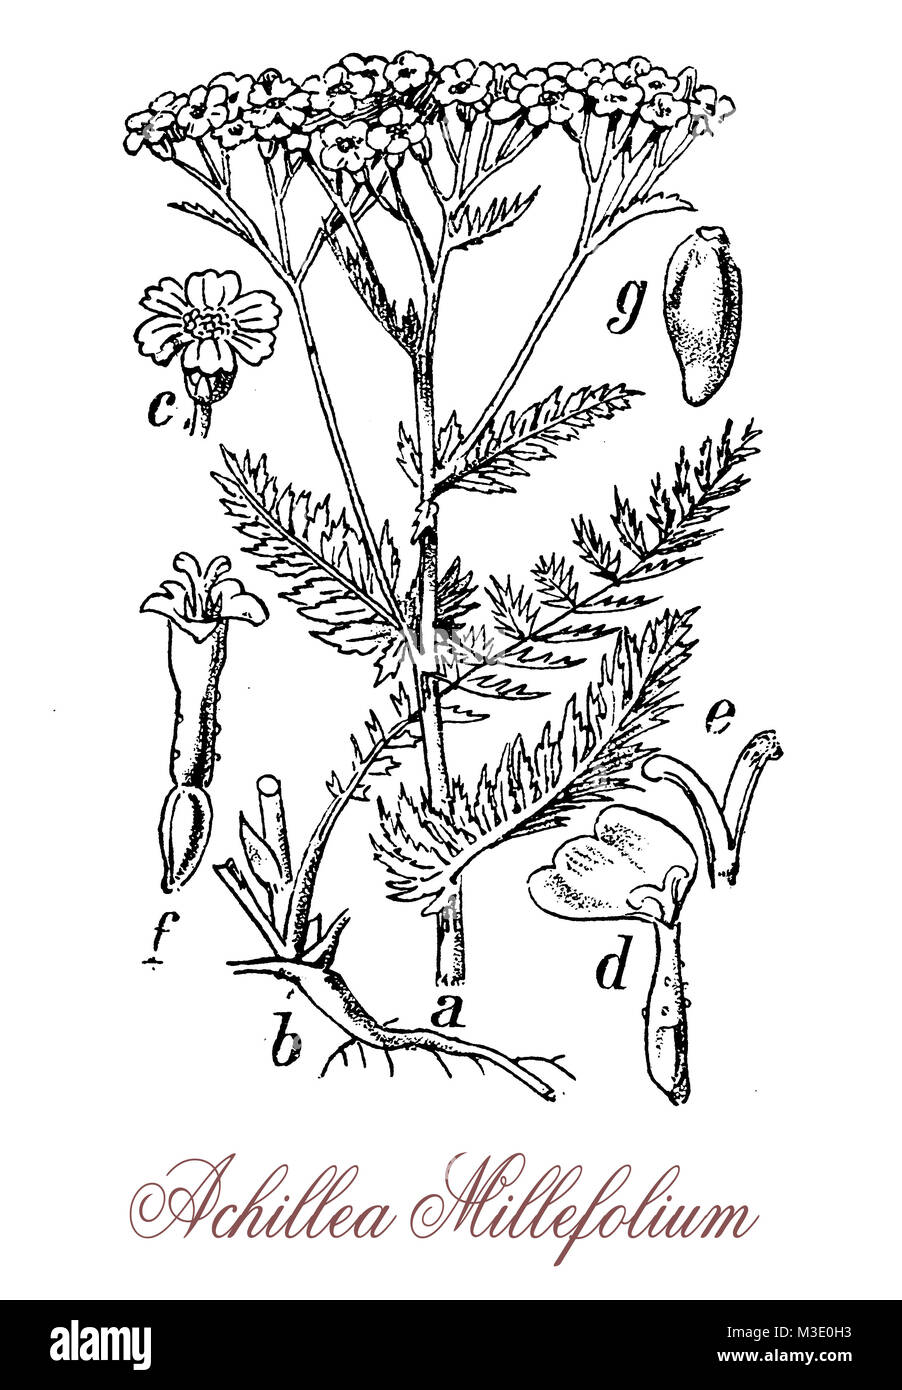 vintage engraving of achillea millefolium or yarrow , flowering plant used in landscaping and in traditional medicine - Stock Image